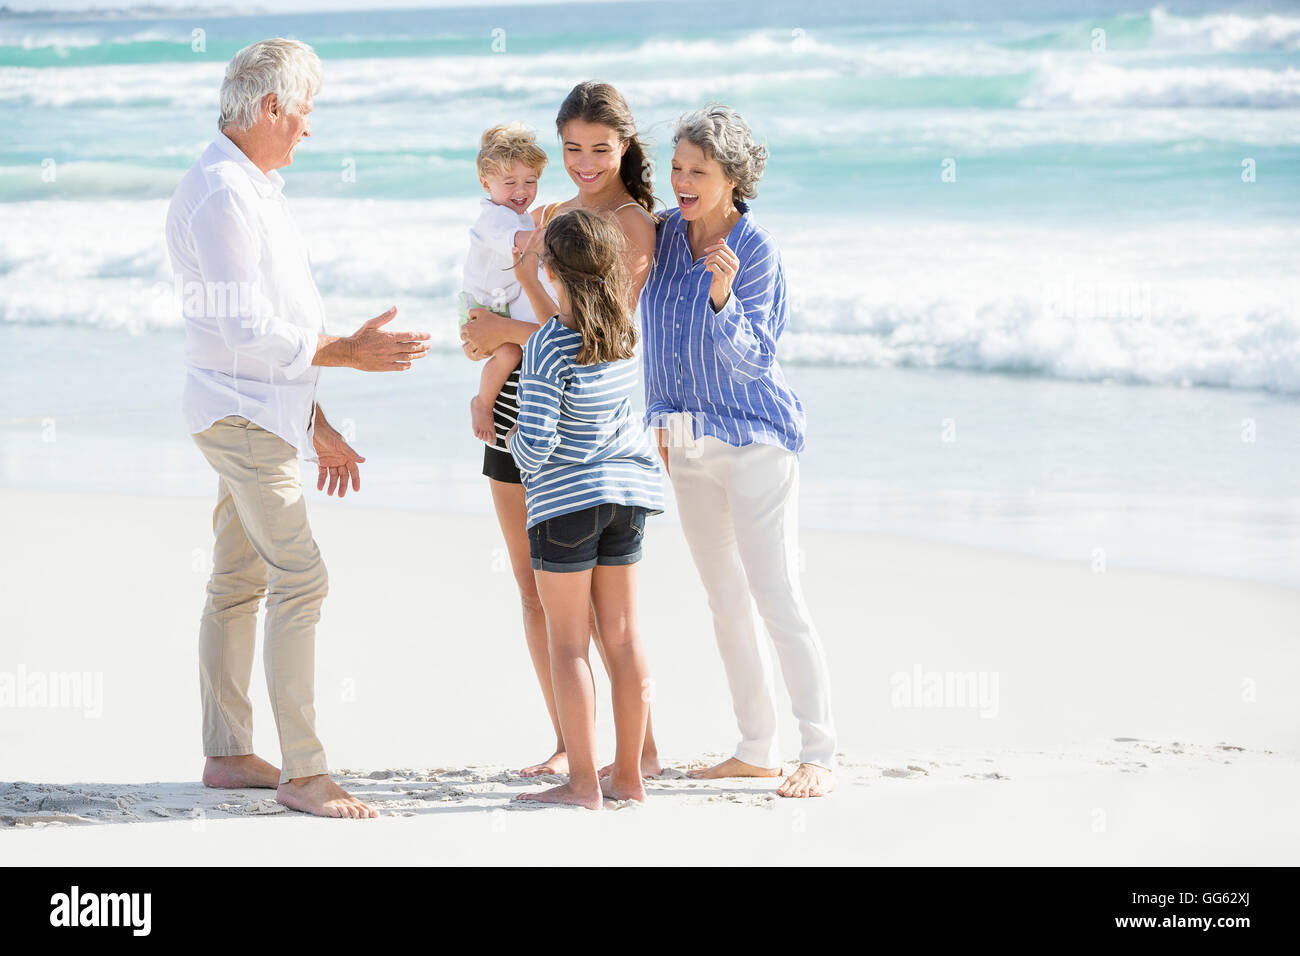 Multi-generation family standing on the beach Photo Stock